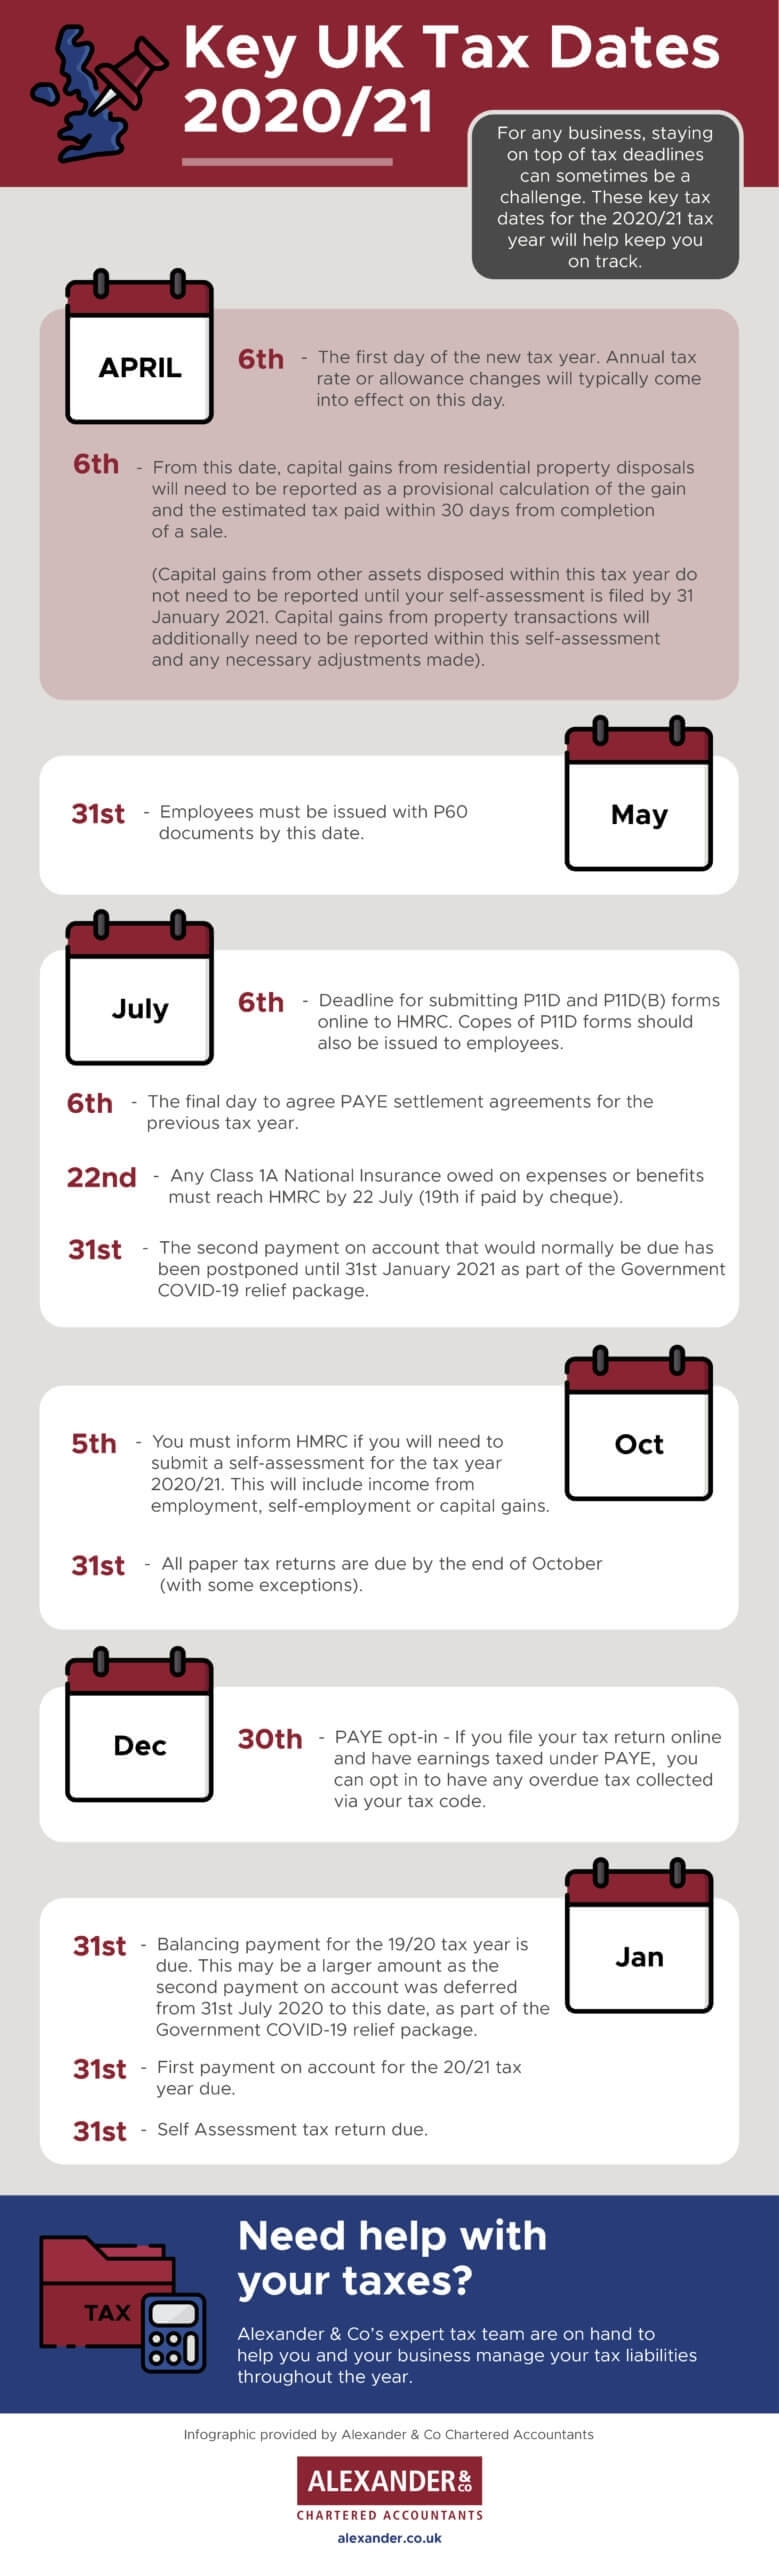 Important Tax Year 2020/21 Dates | Alexander & Co.